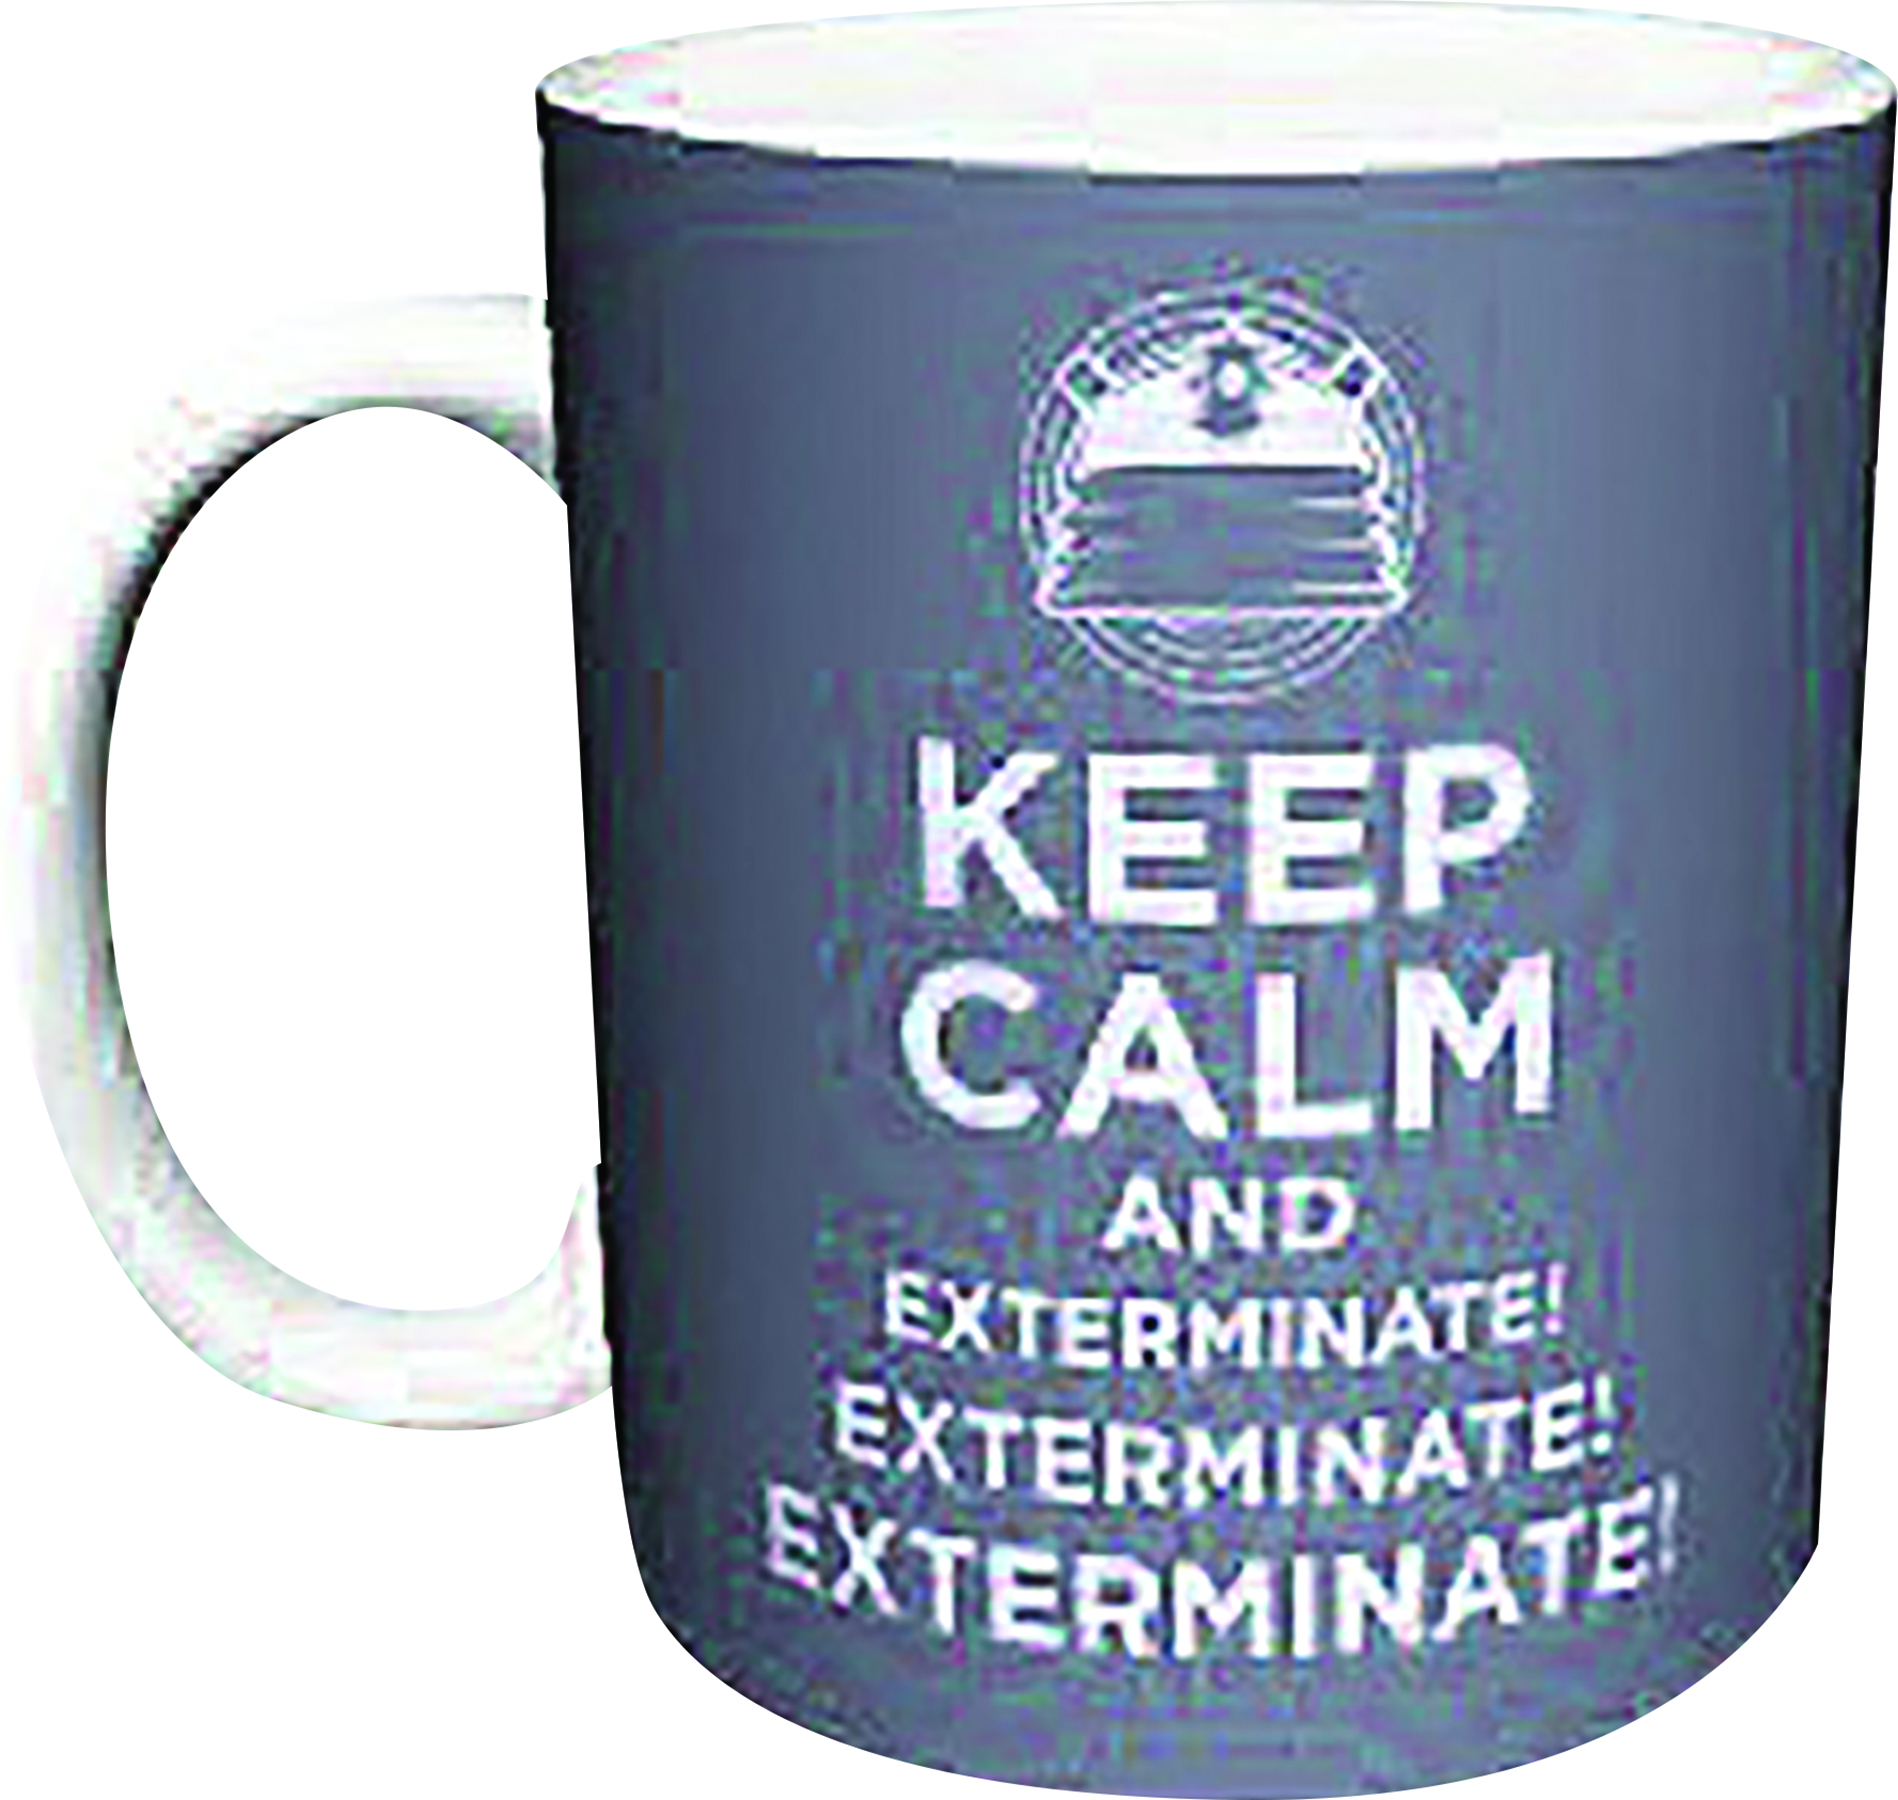 DOCTOR WHO KEEP CALM AND EXTERMINATE MUG